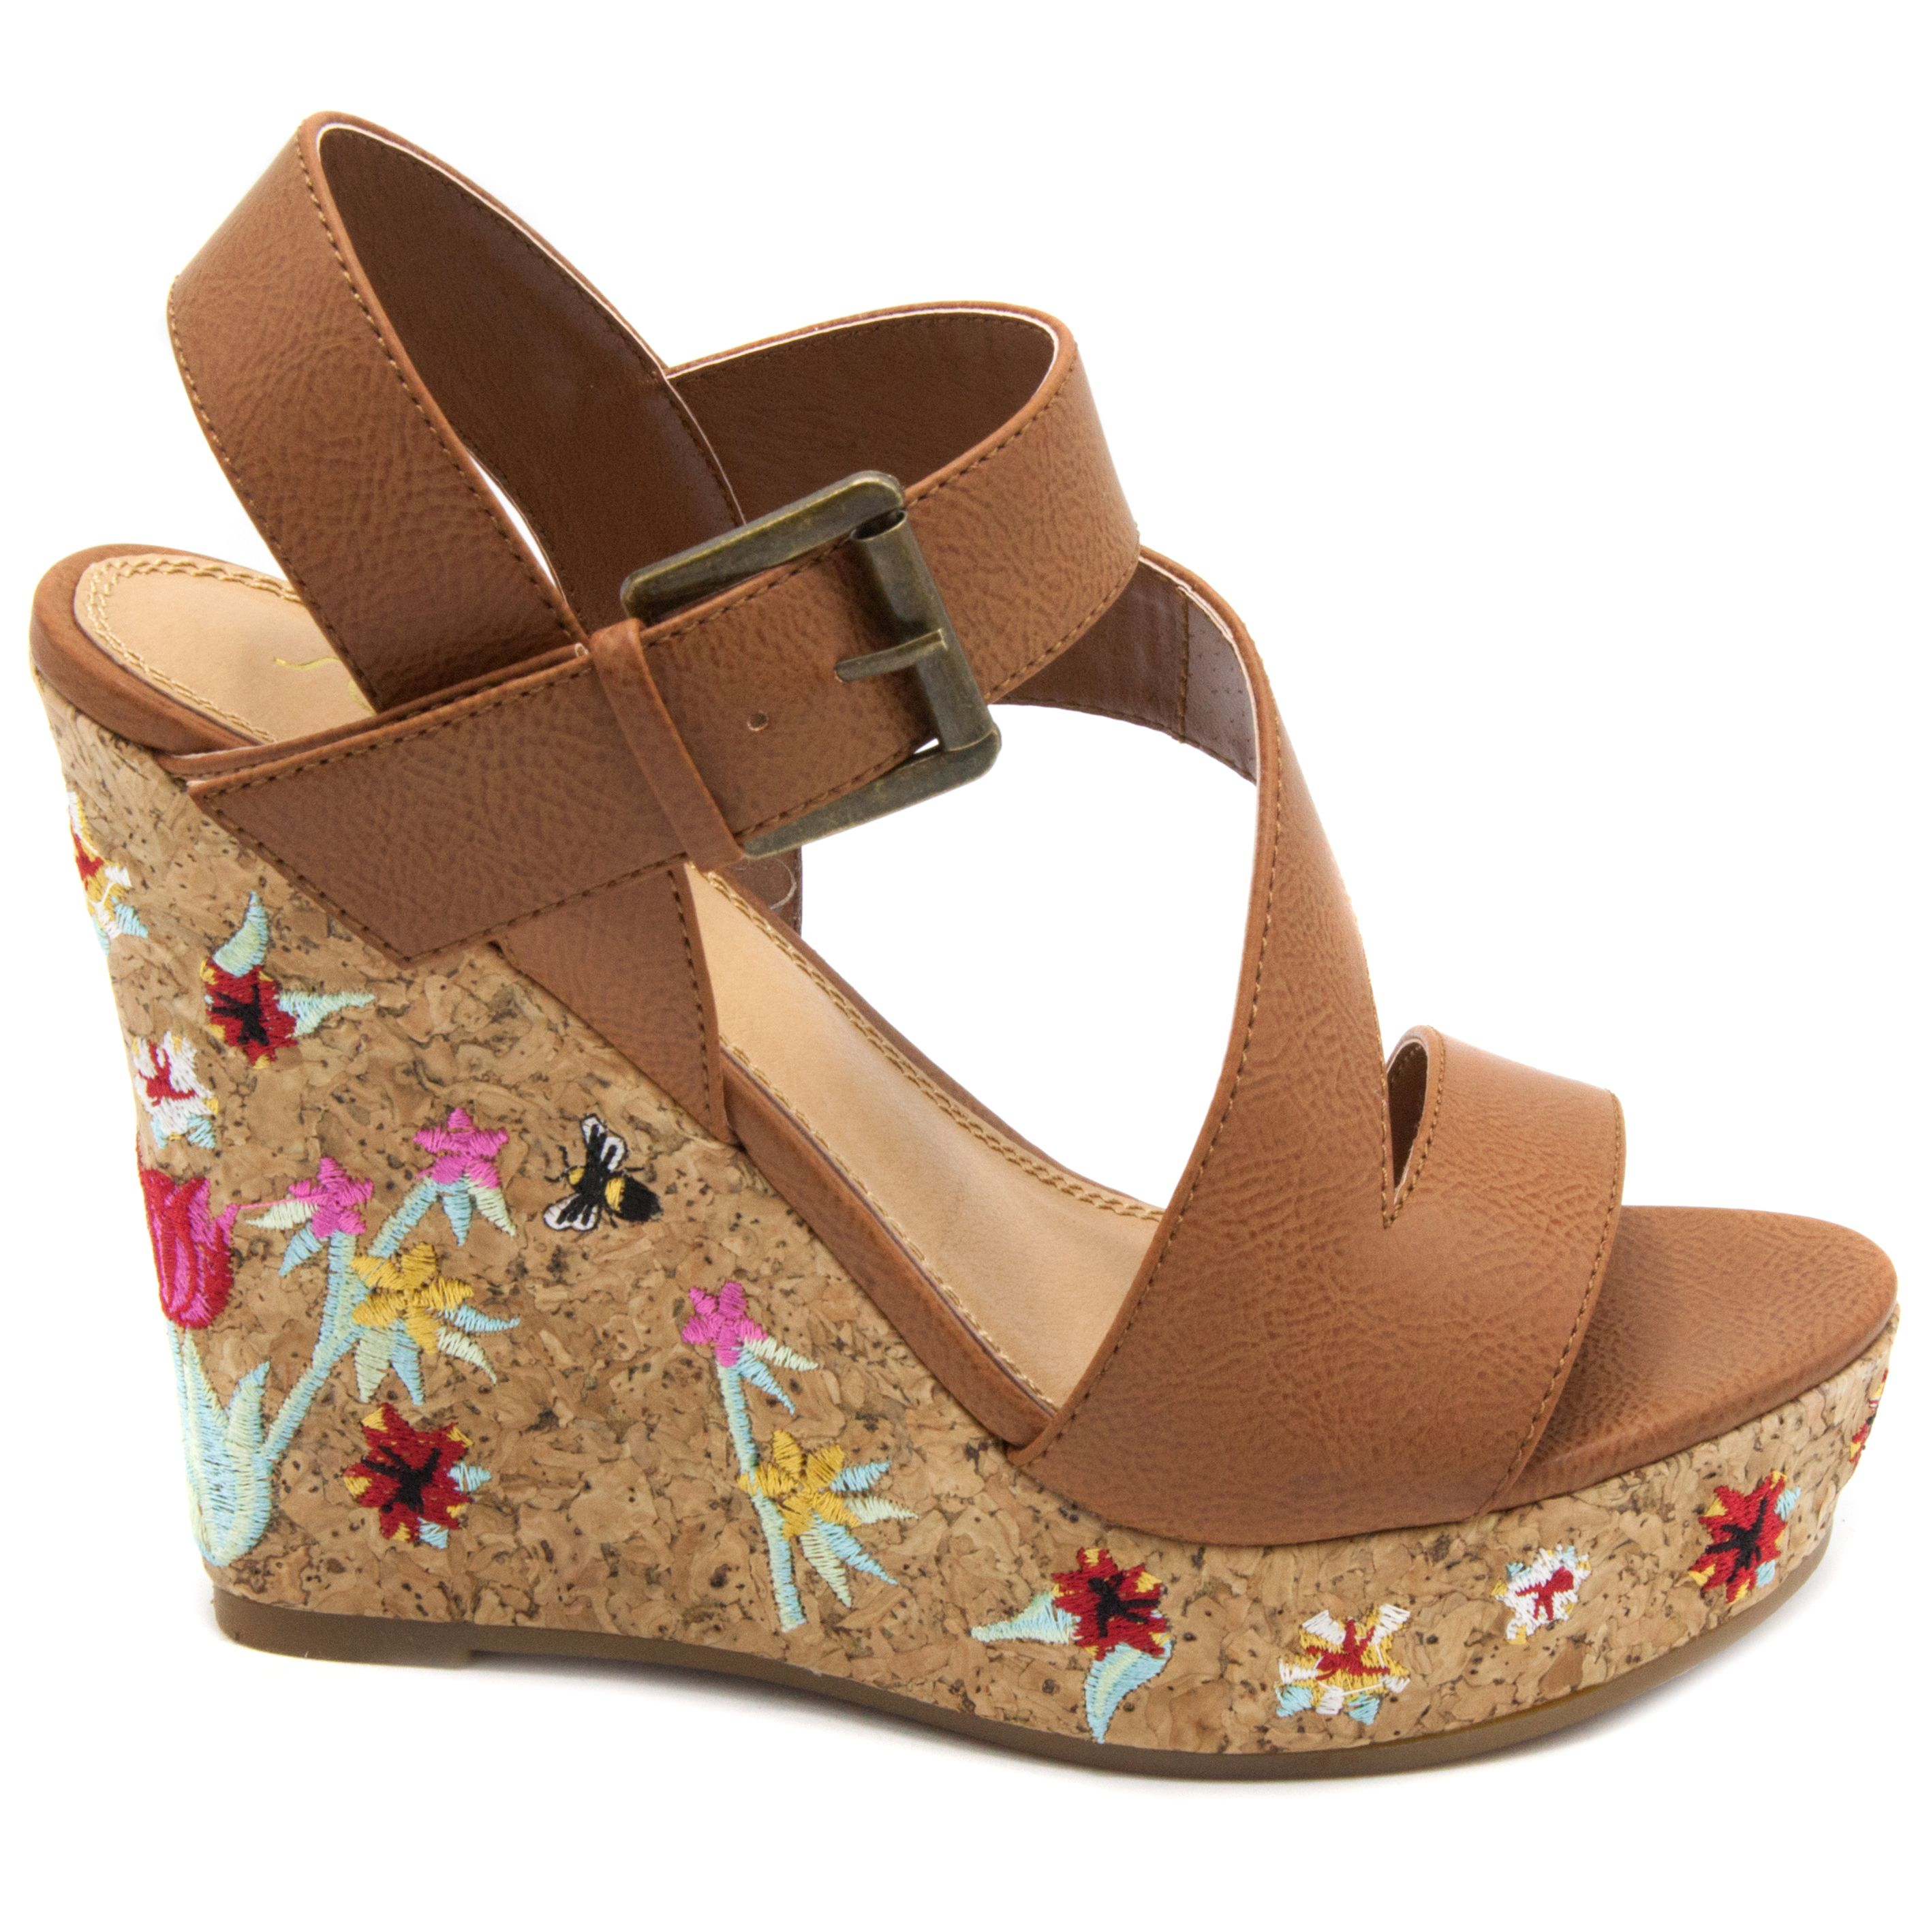 632c9f86c Cork wedge with embroidery on the heel in a natural color sandal. So fun  for summer! Sugar